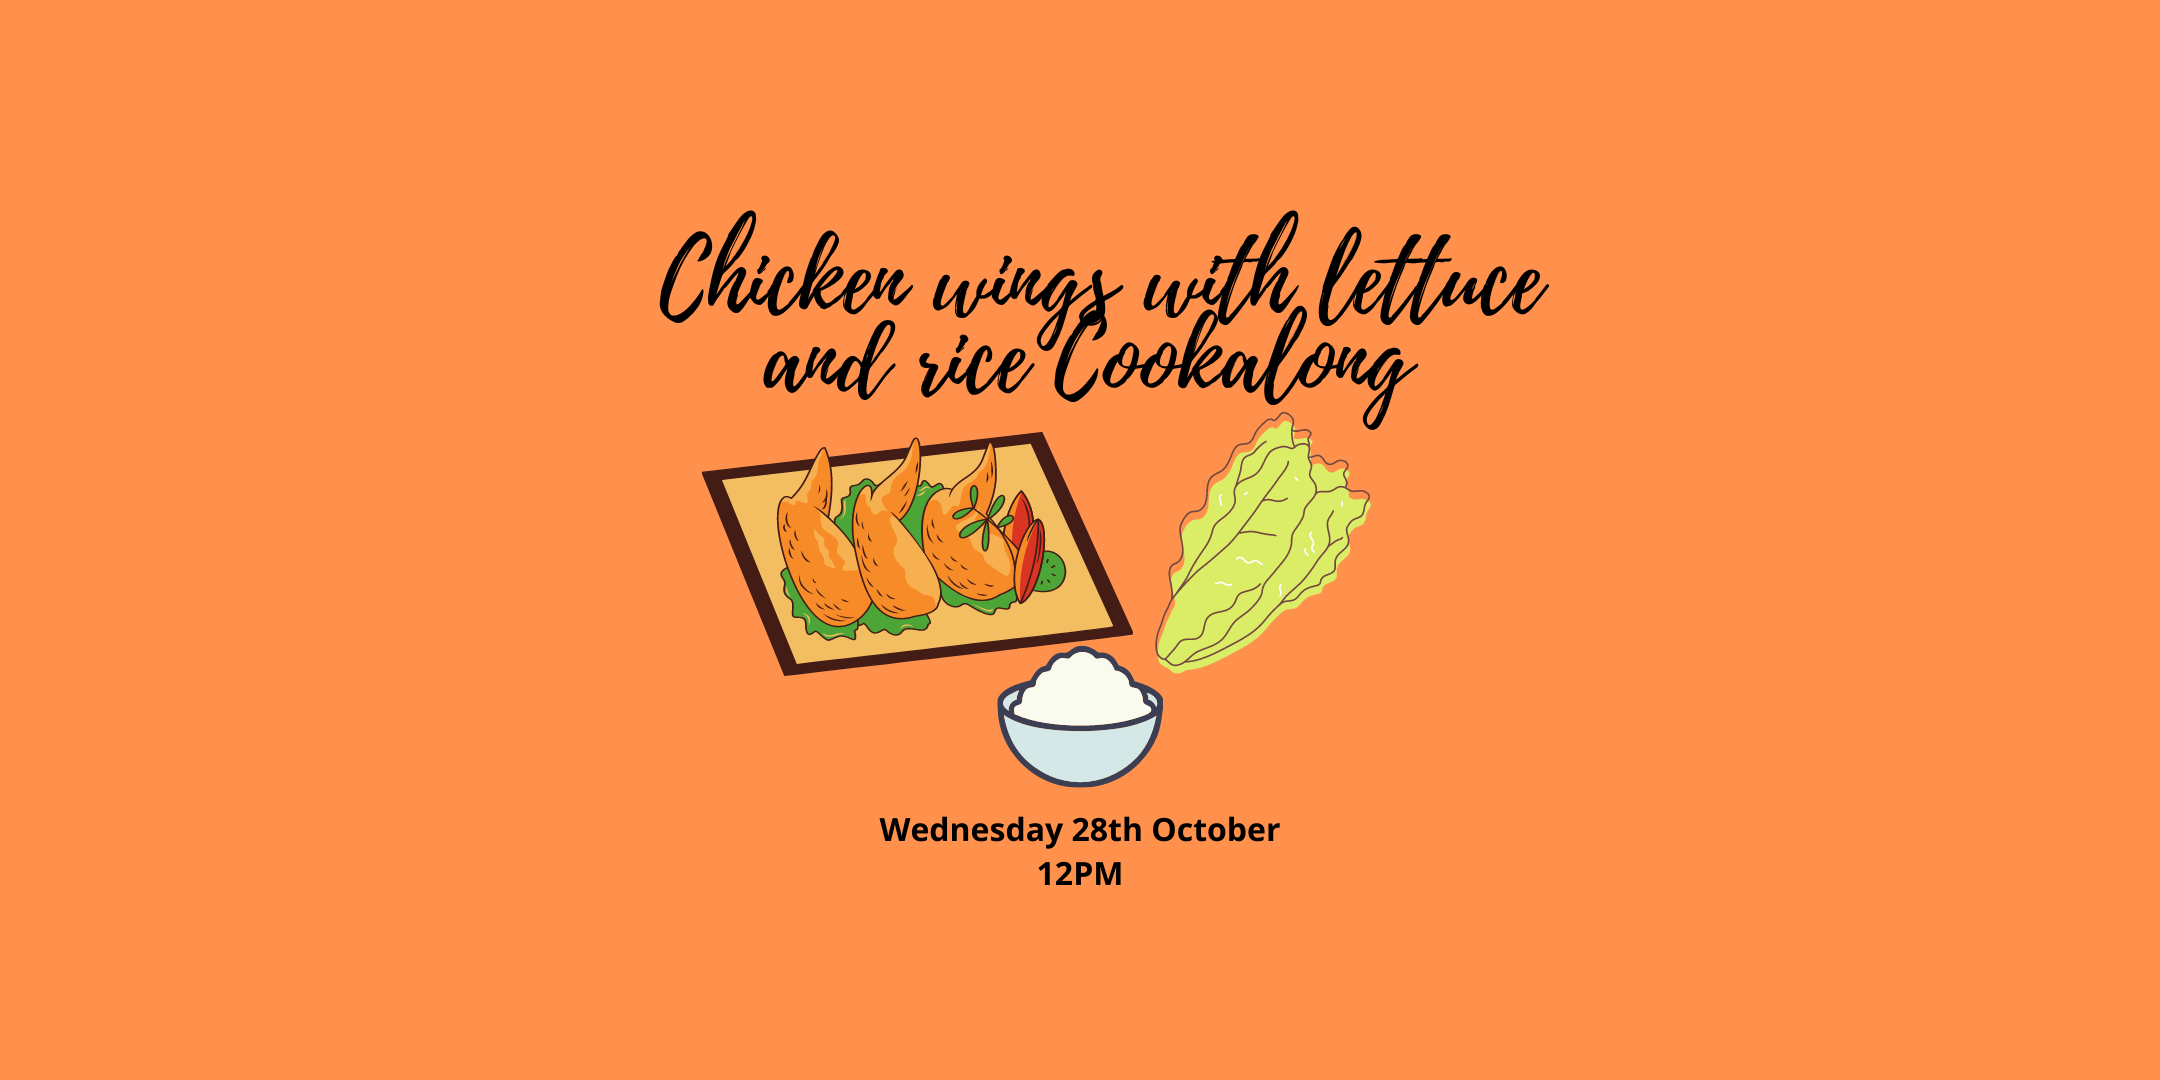 Cartoon chicken wings, lettuce leaves and rice